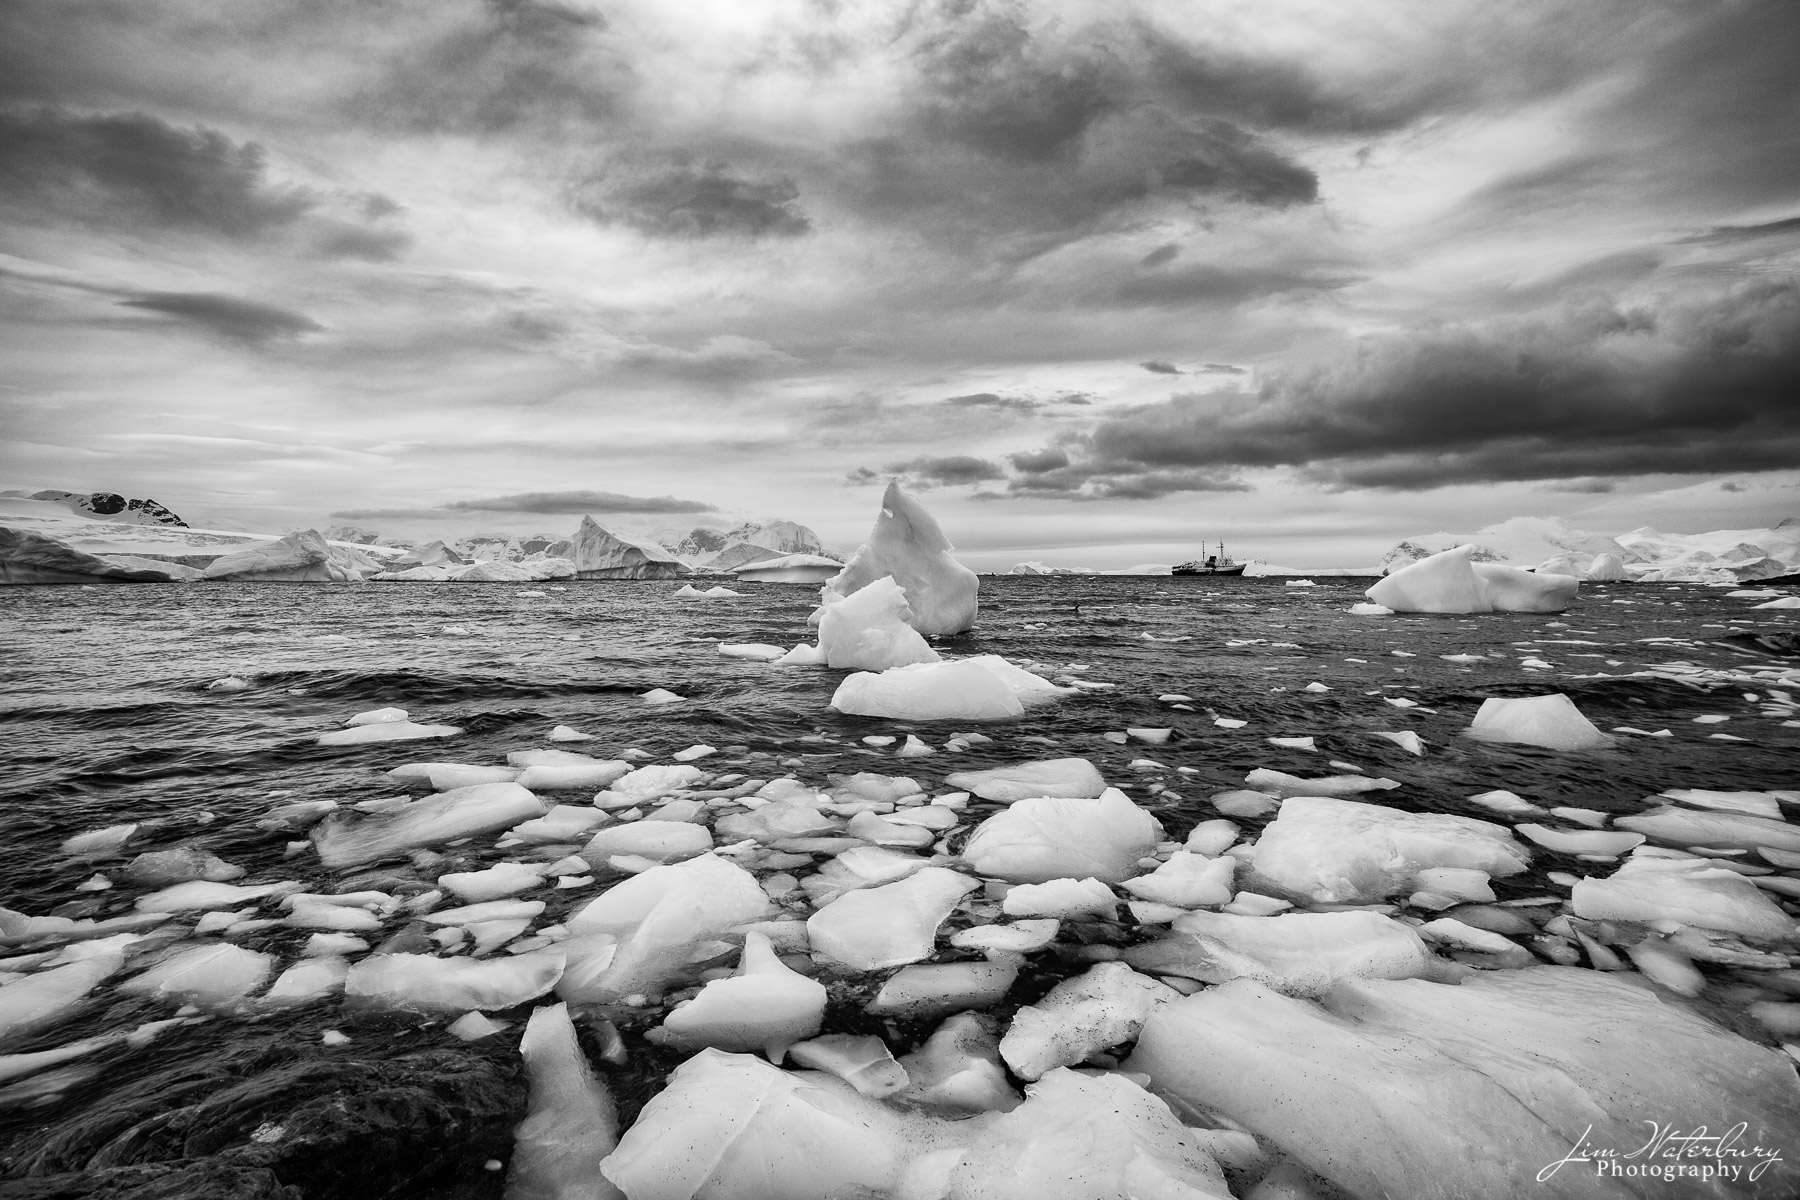 Antarctica, ice, Cuverville Island, stormy, ship, B&W, photo